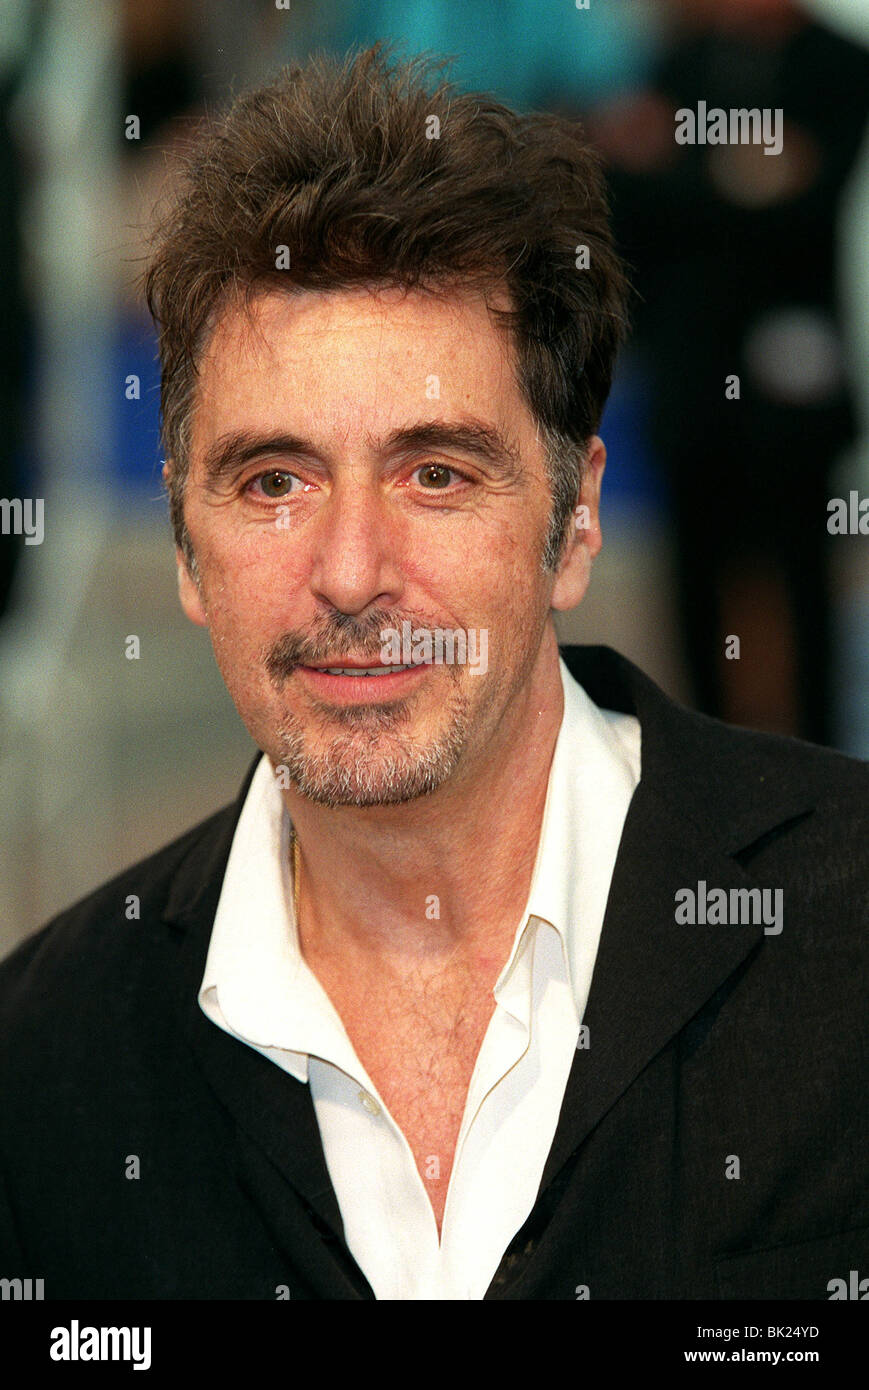 Al Pacino Stock Photos...